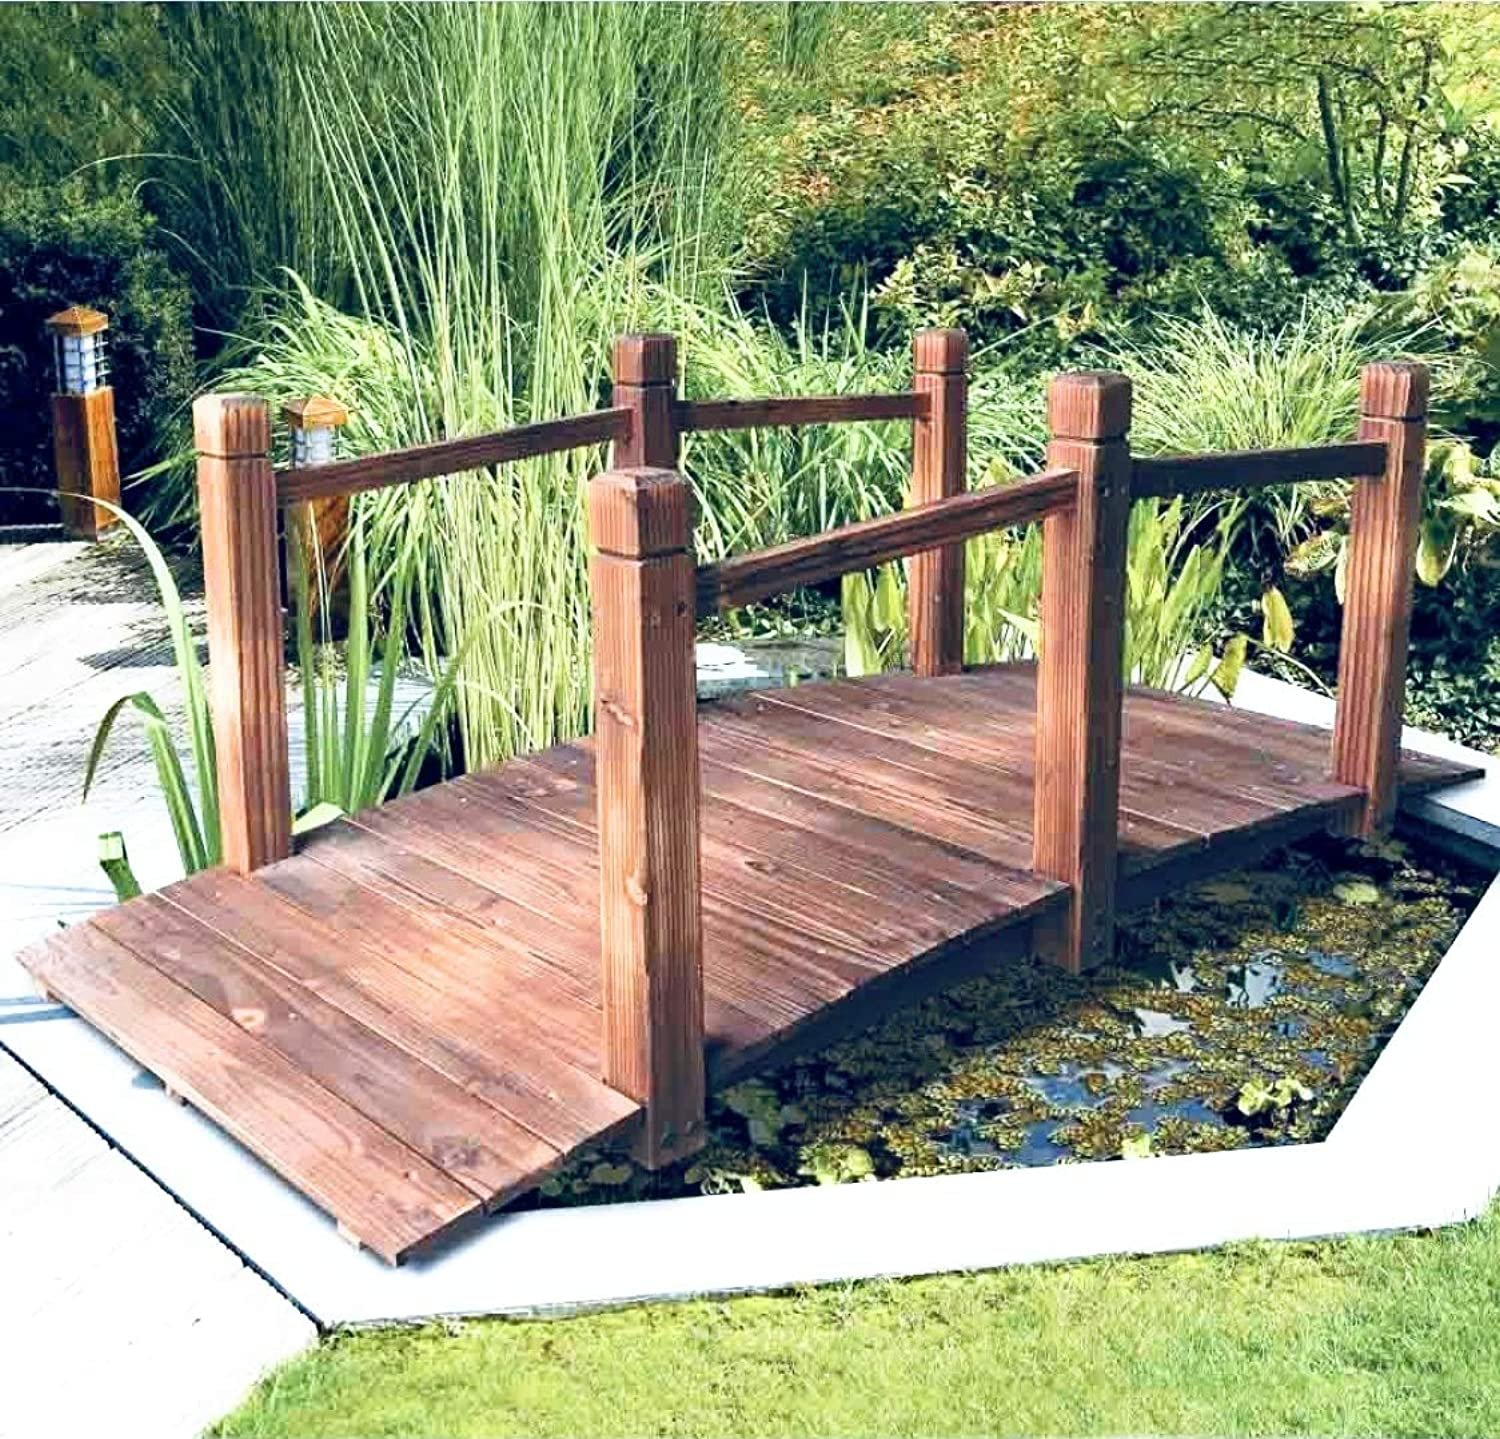 Abaseen decorative wooden Garden Bridge 5ft for Streams Ponds and Garden decoration